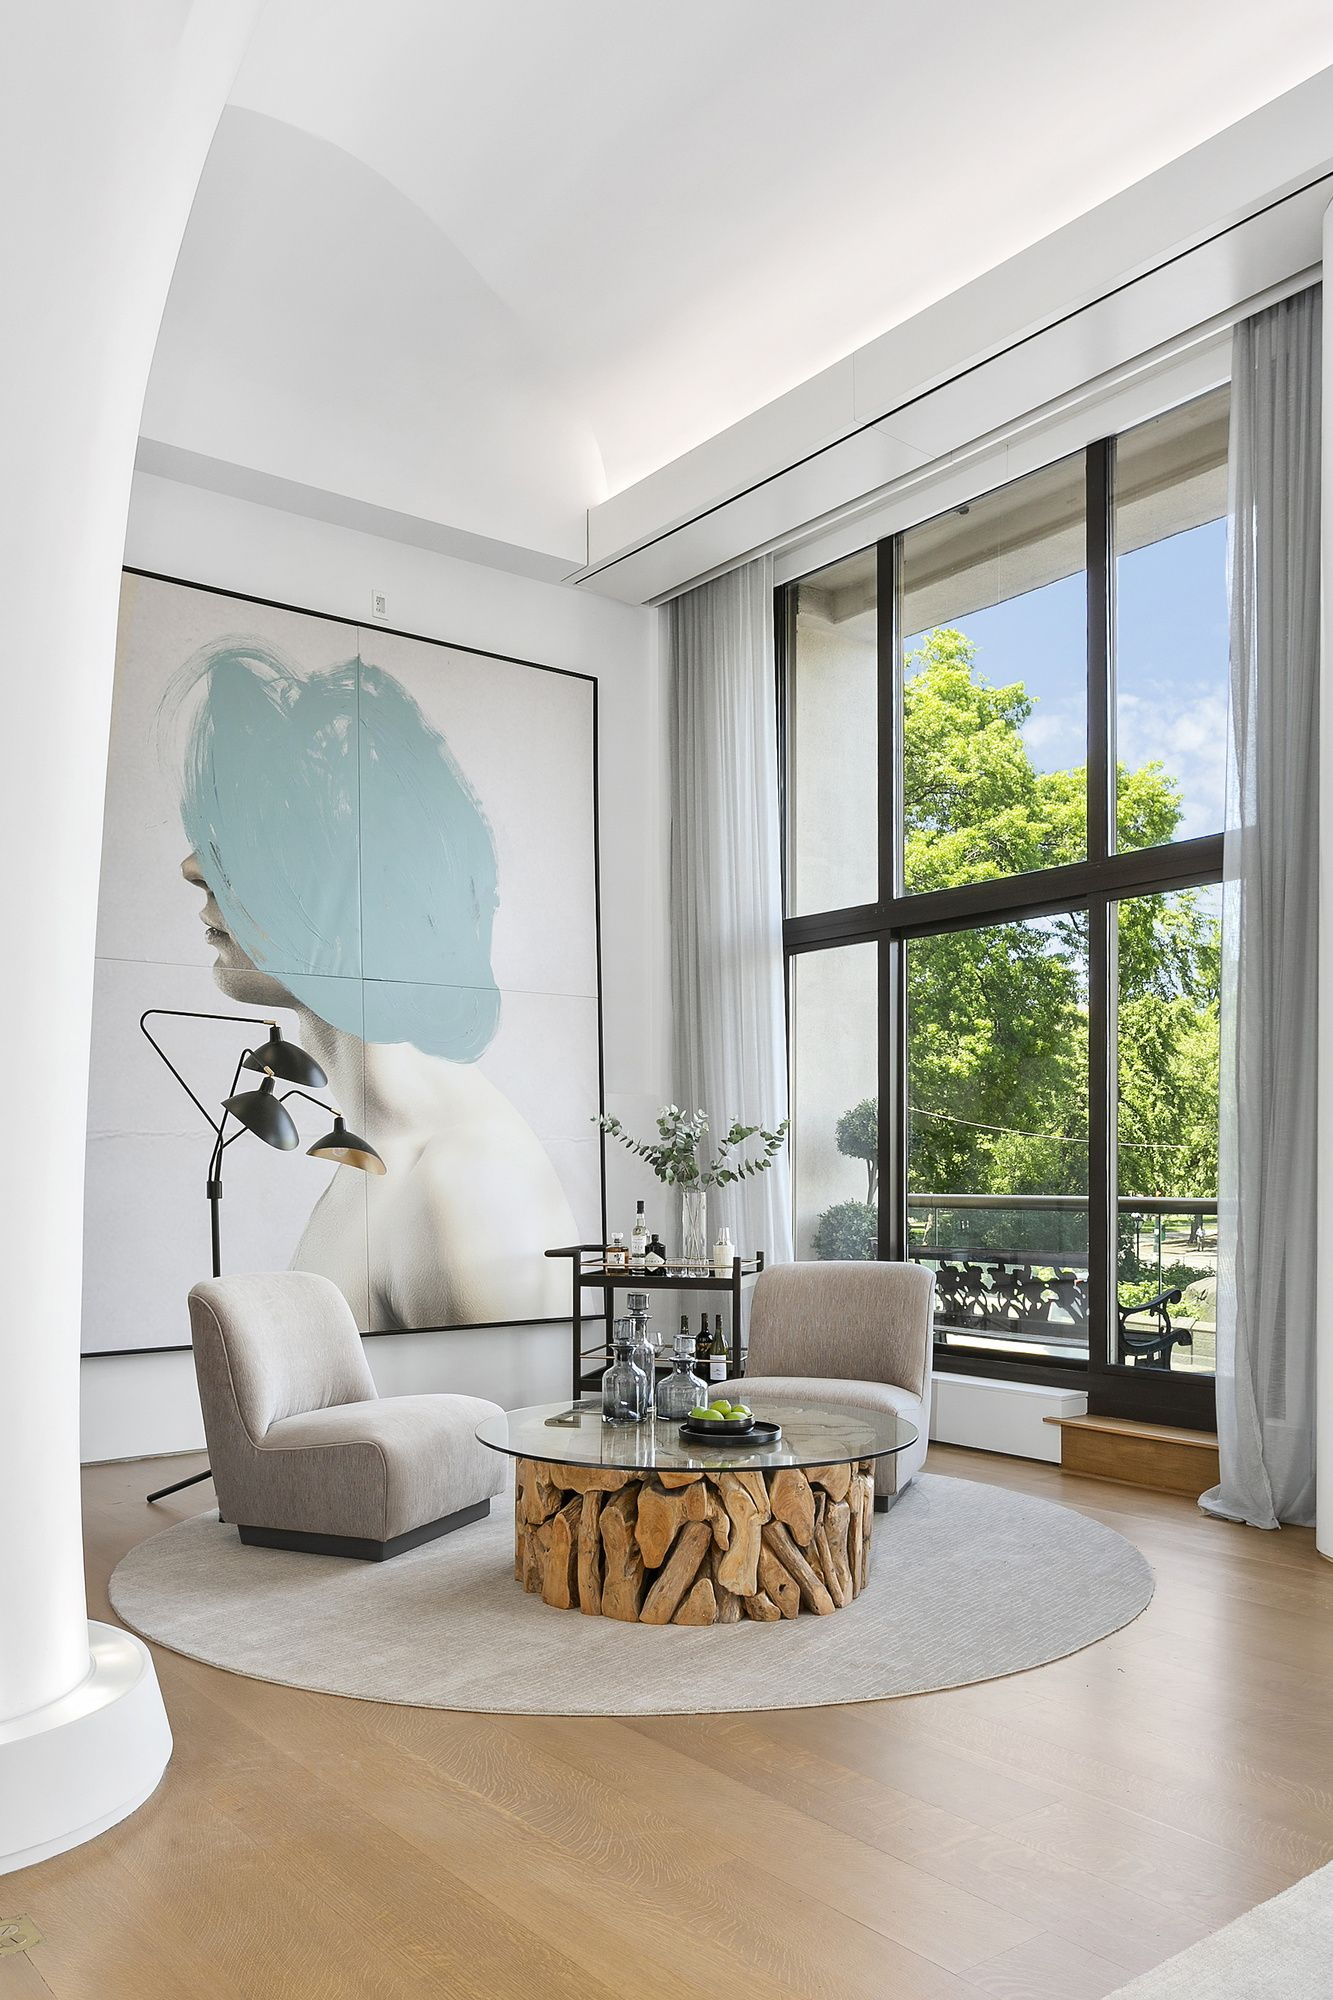 106 Central Park South Central Park South Nyc Real Estate Corcoran Nyc Real Estate Park South Condo